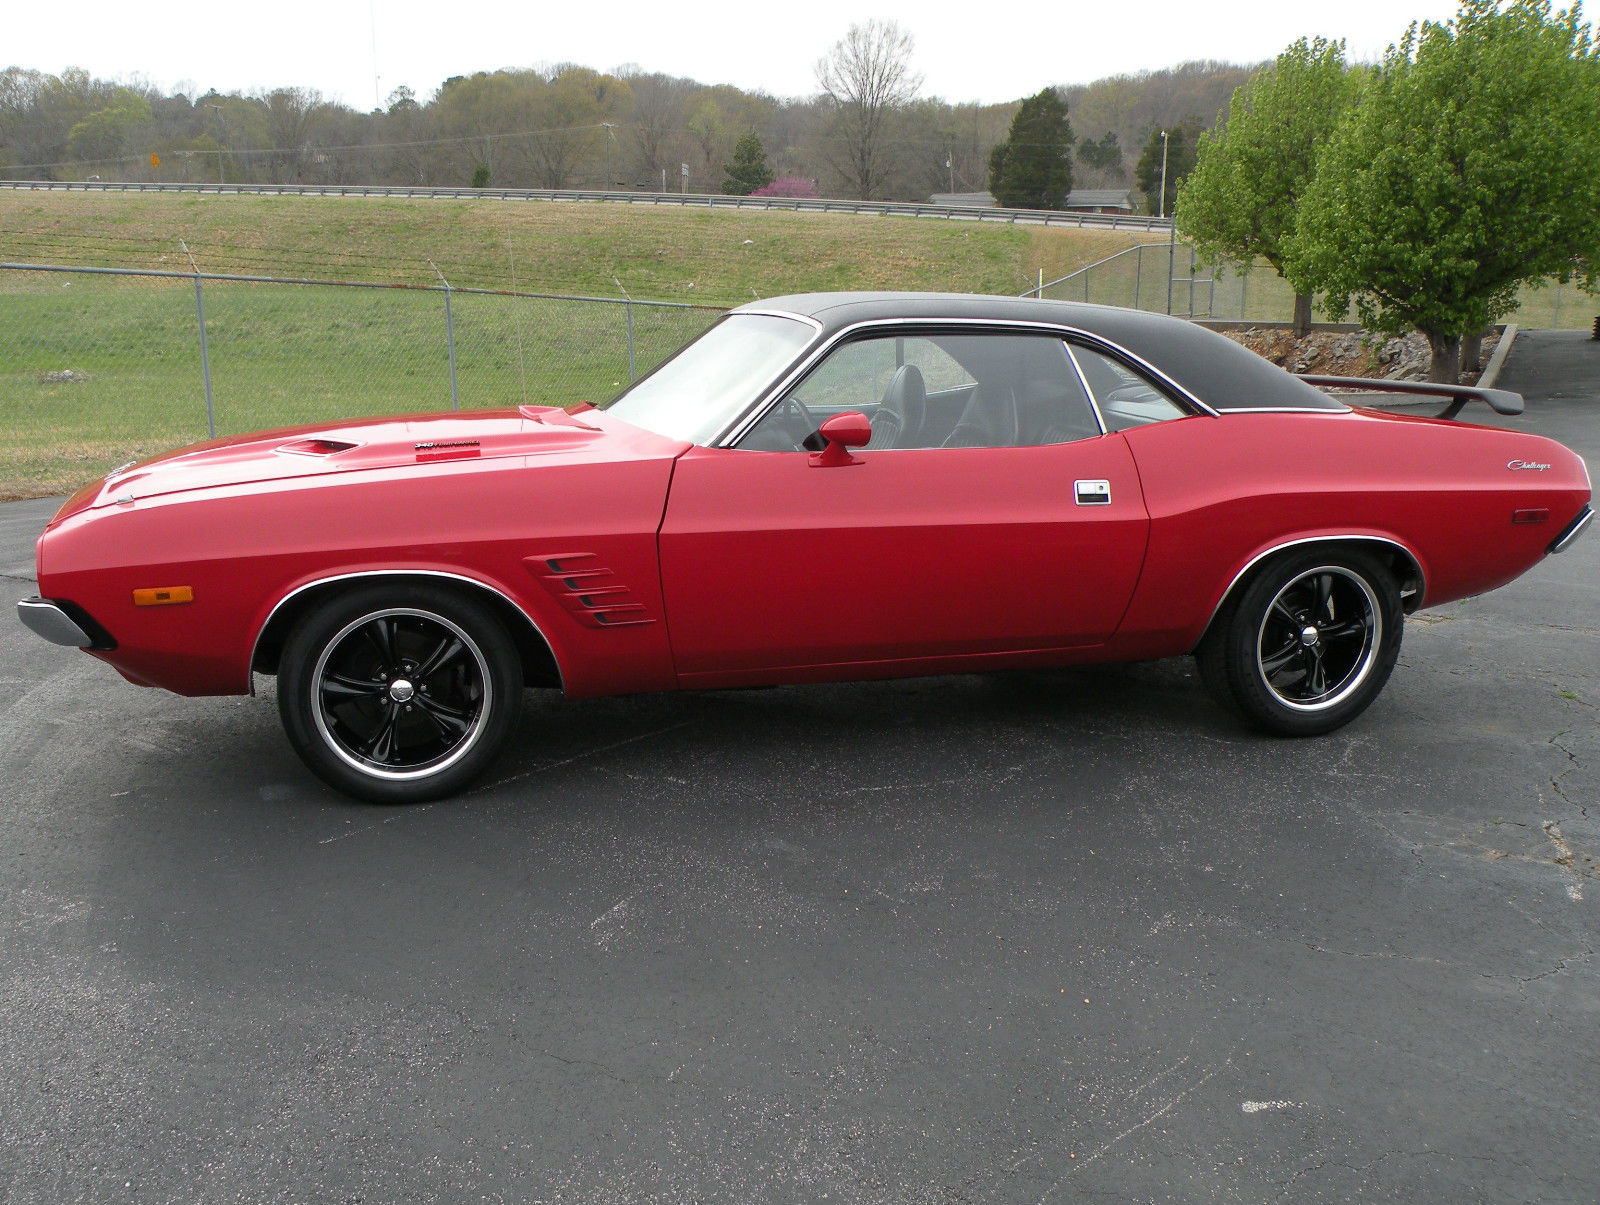 1973 dodge challenger matching numbers 340 factory air red with black interior for sale in for Black dodge challenger with red interior